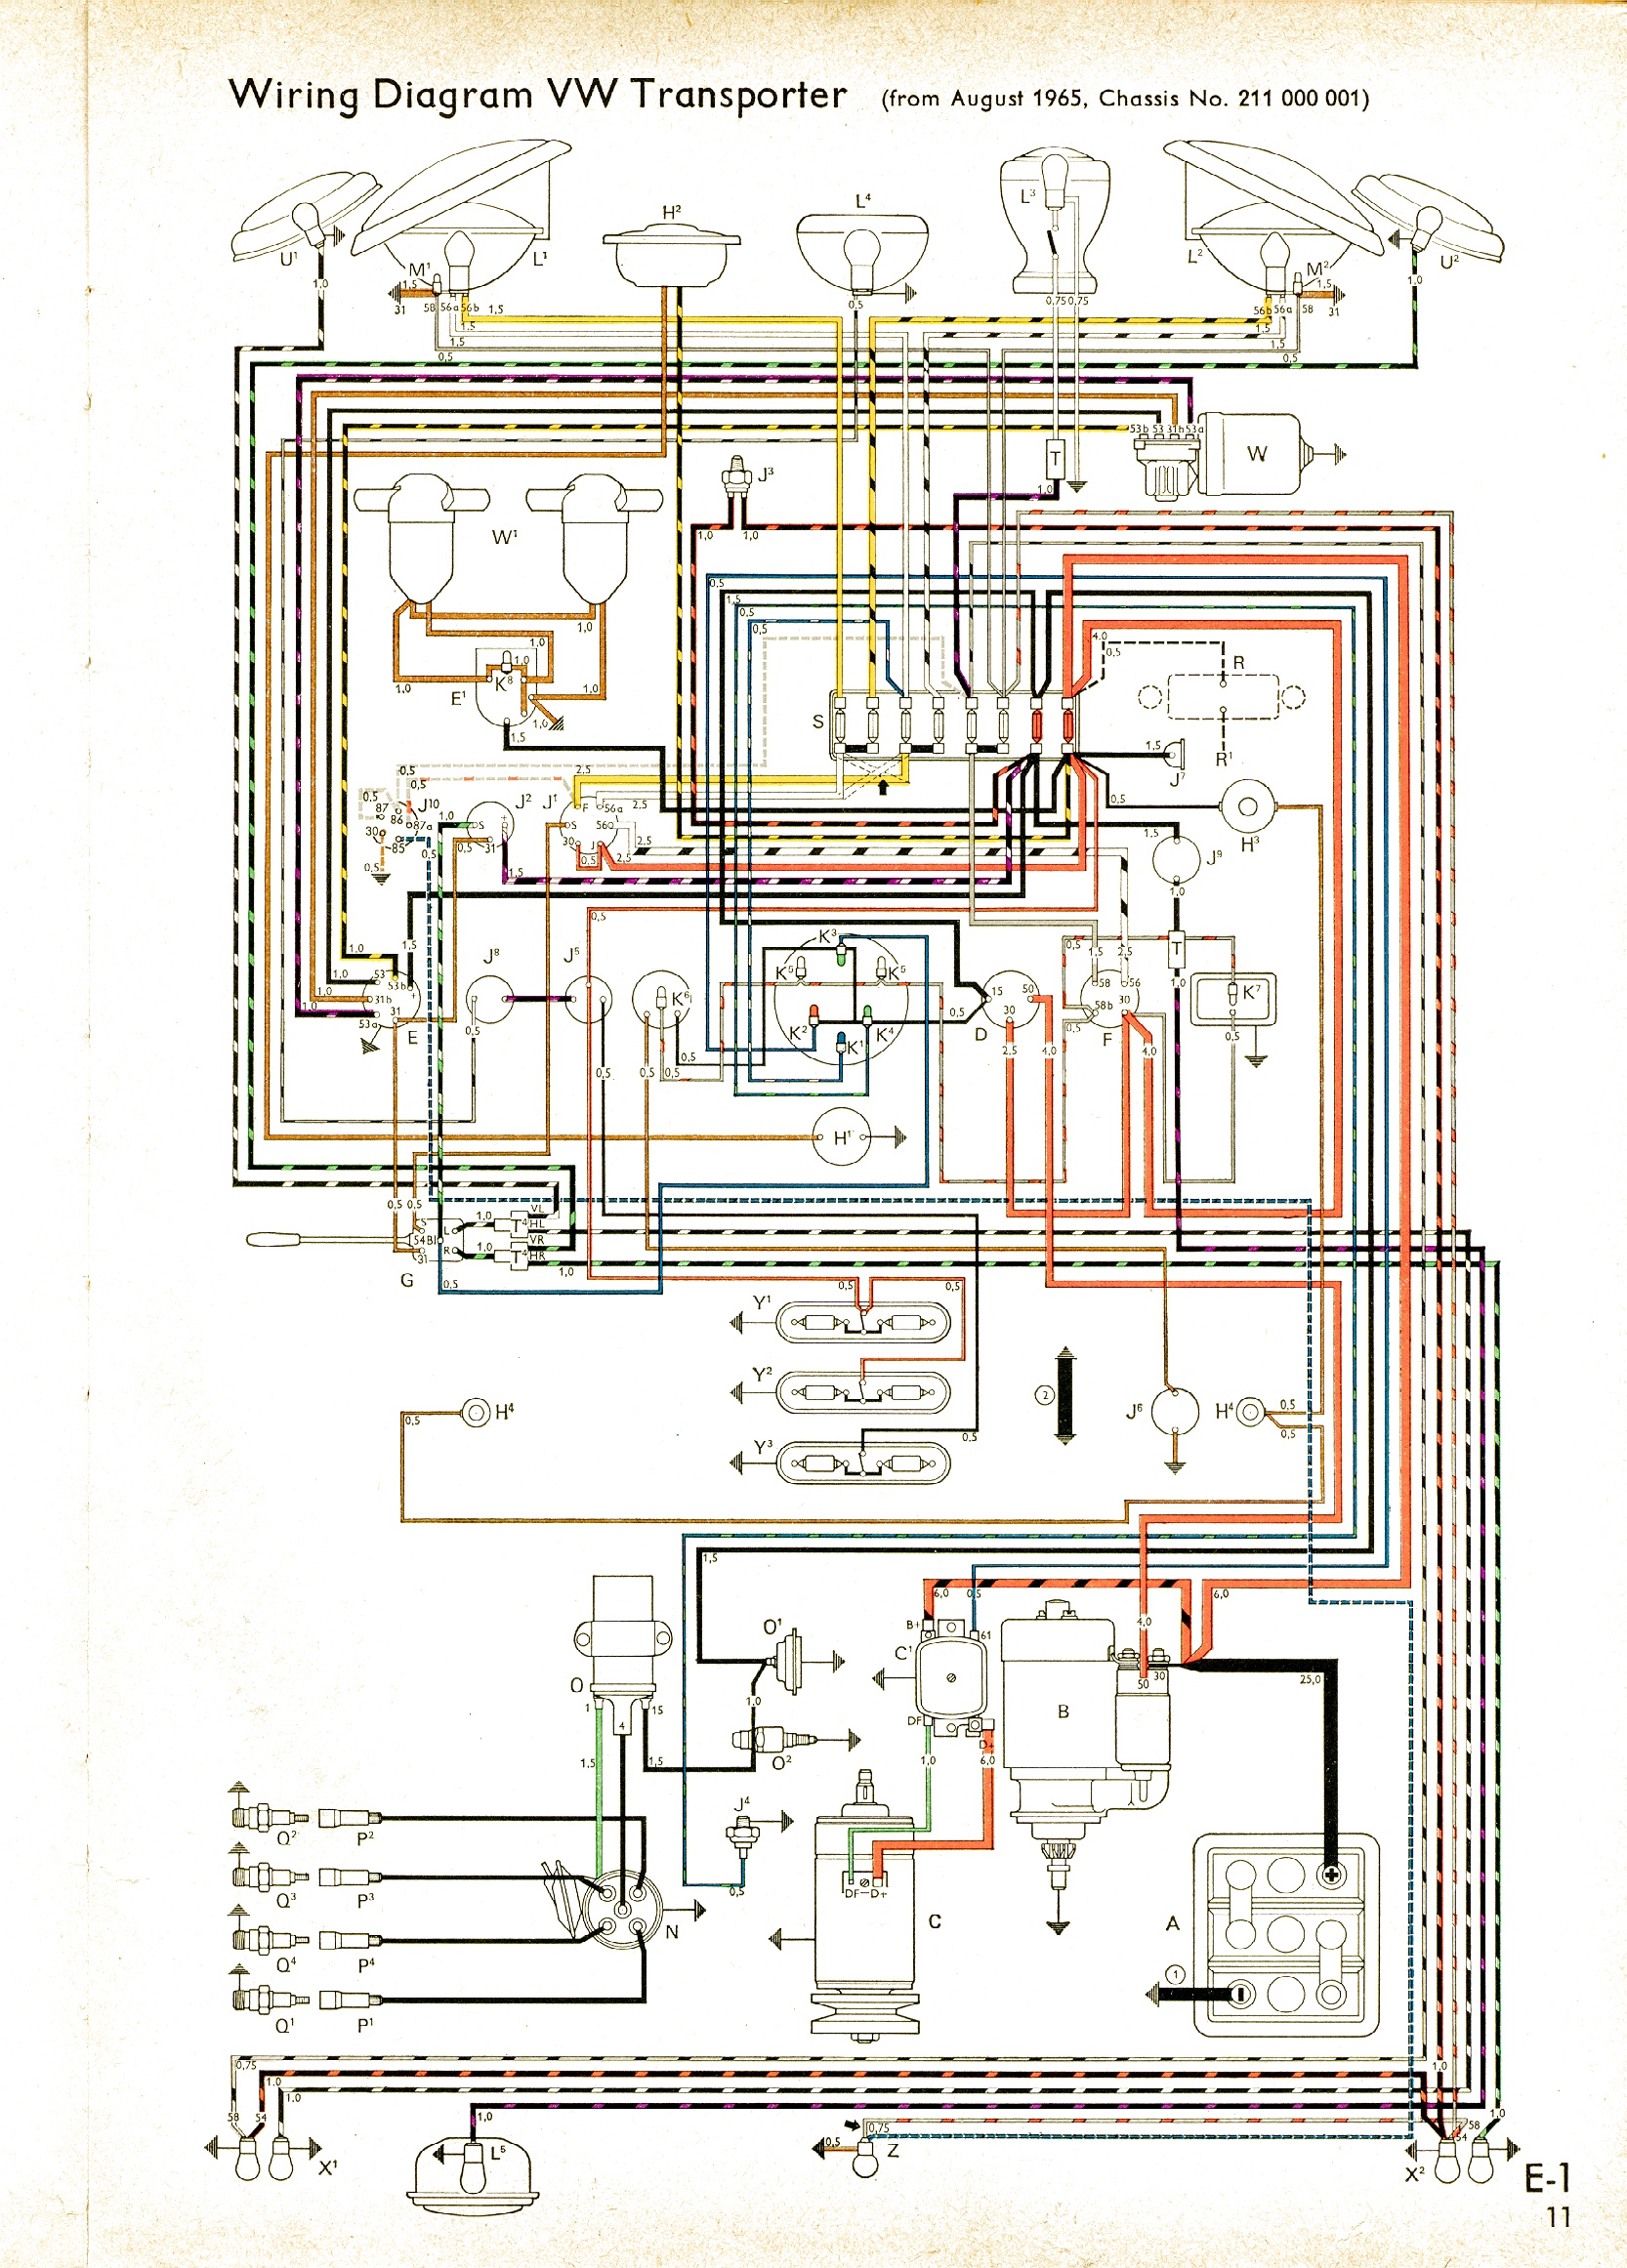 bus 65 vintagebus com vw bus (and other) wiring diagrams find wiring diagram for 87 ford f 150 at bayanpartner.co